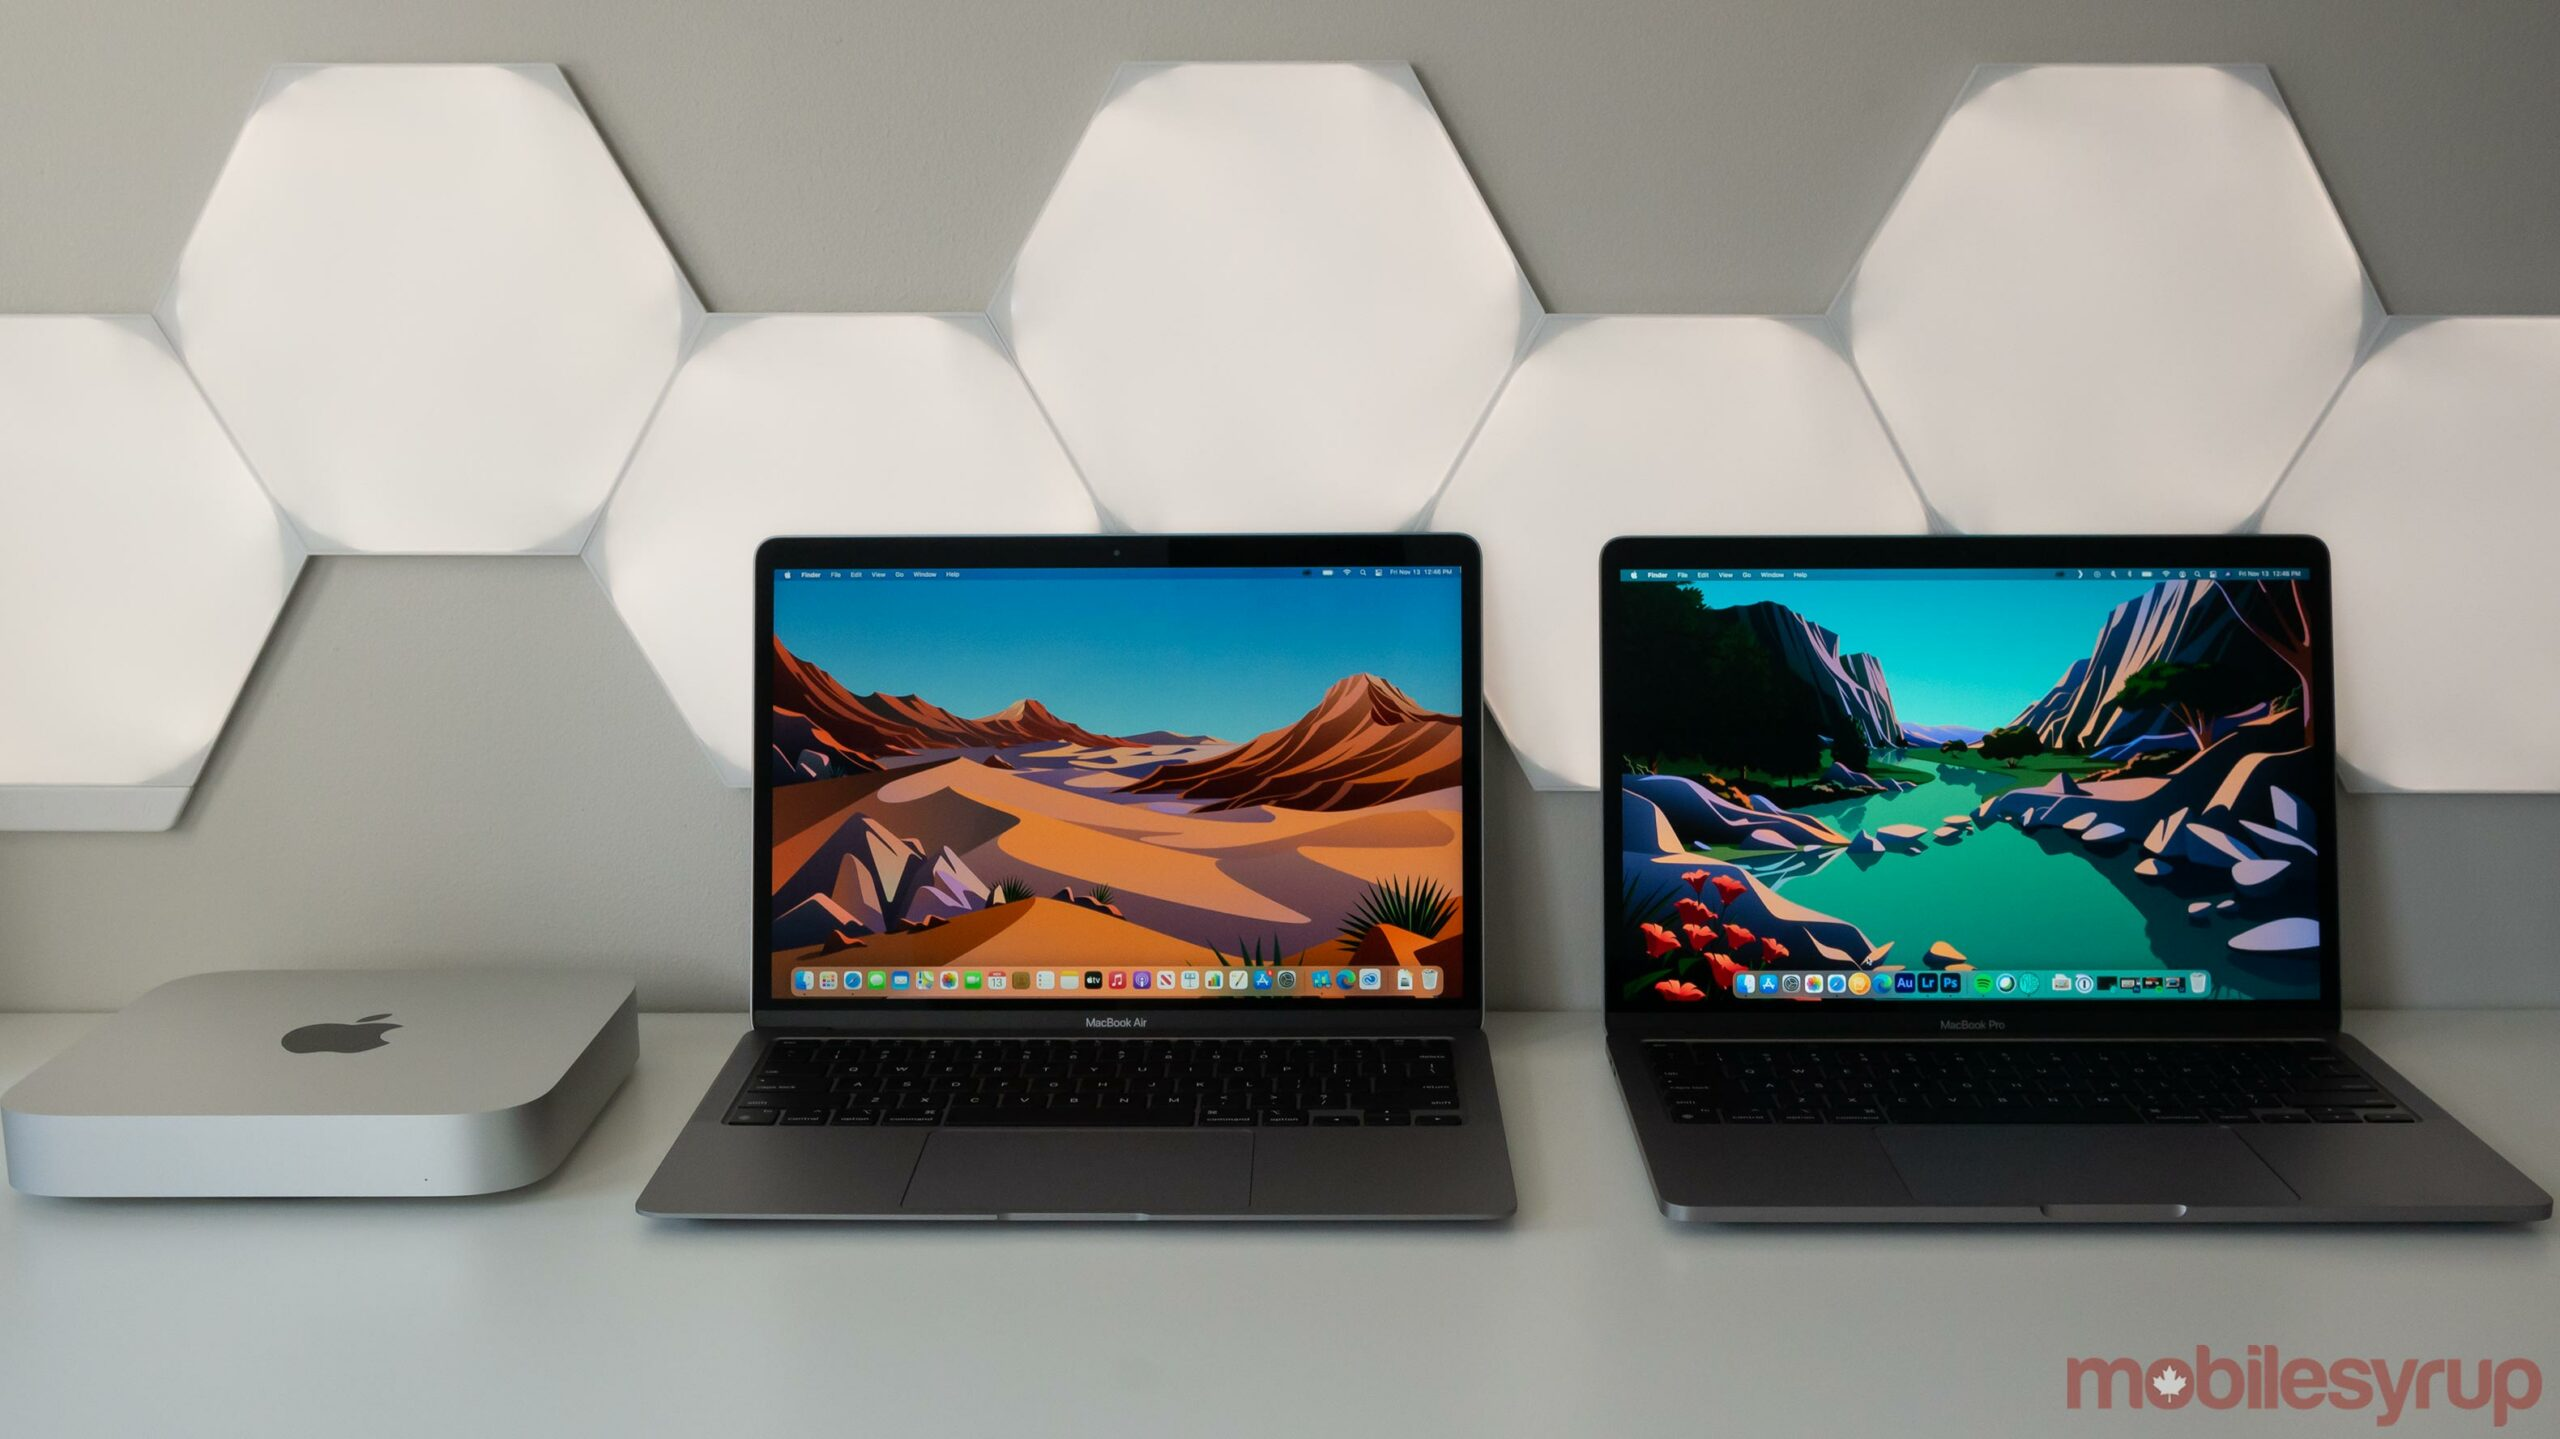 M1 Mac mini, MacBook Pro and MacBook Air